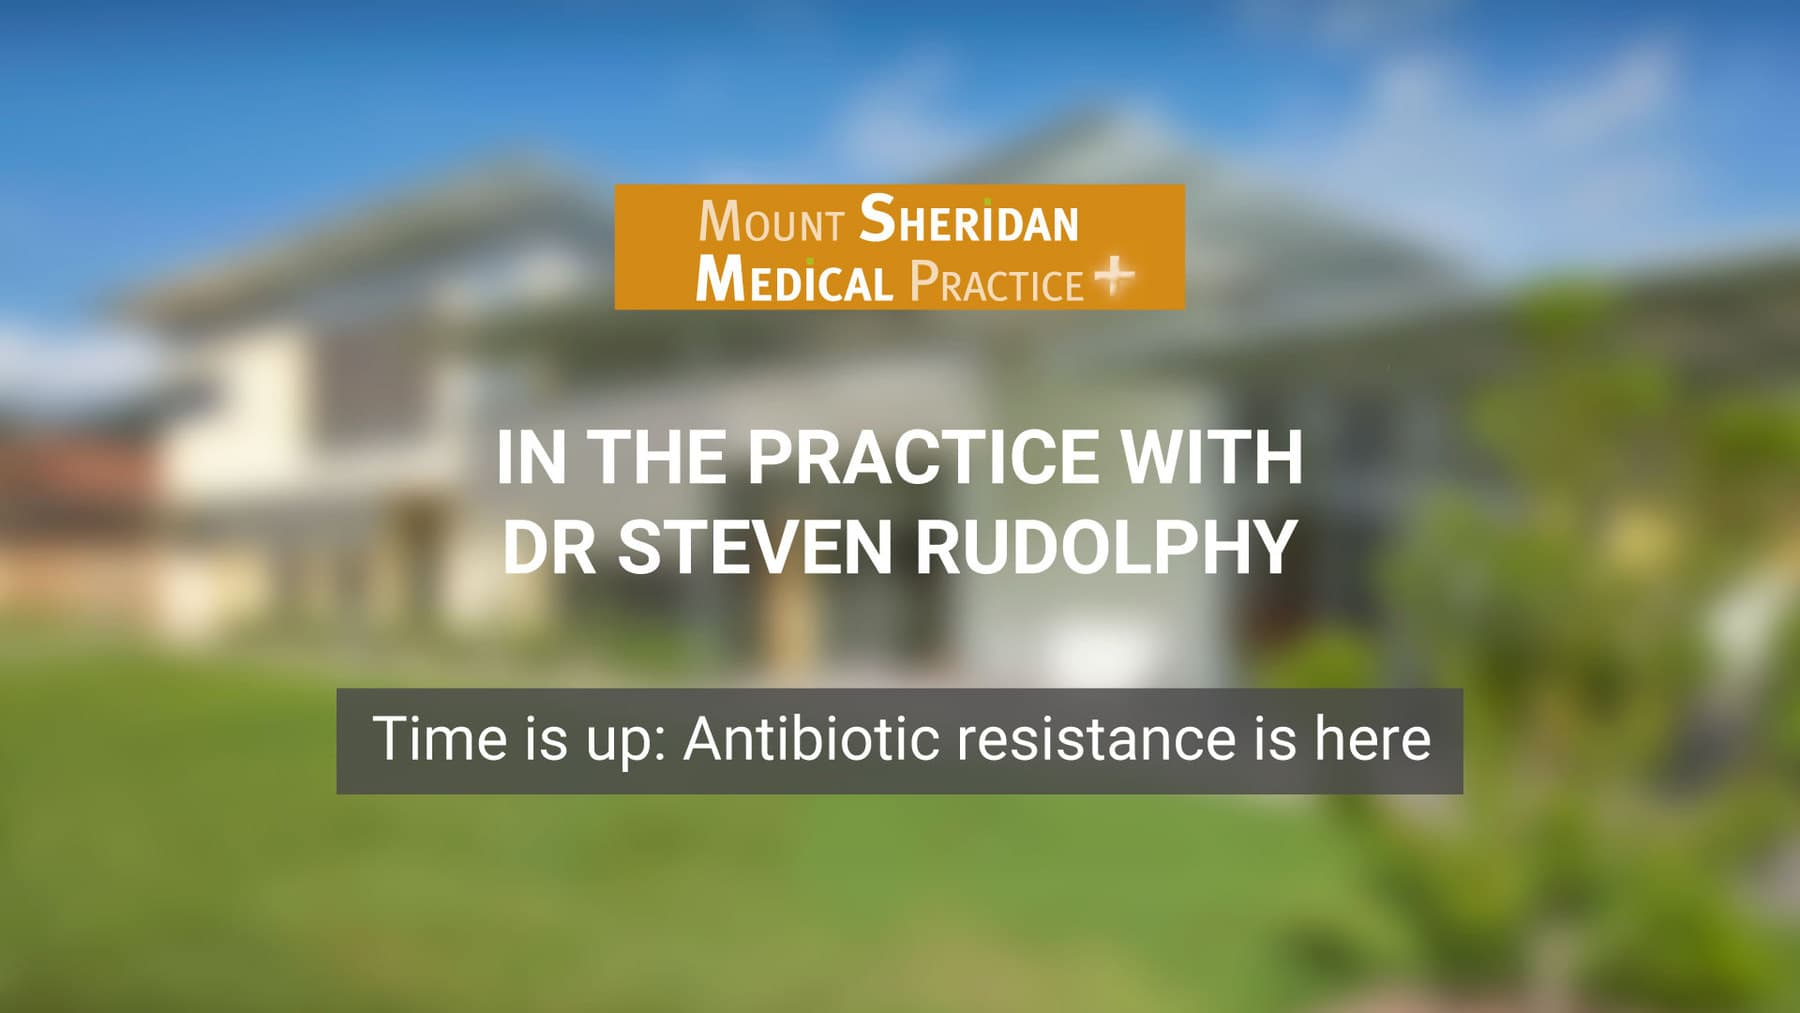 Time is up: Antibiotic resistance is here